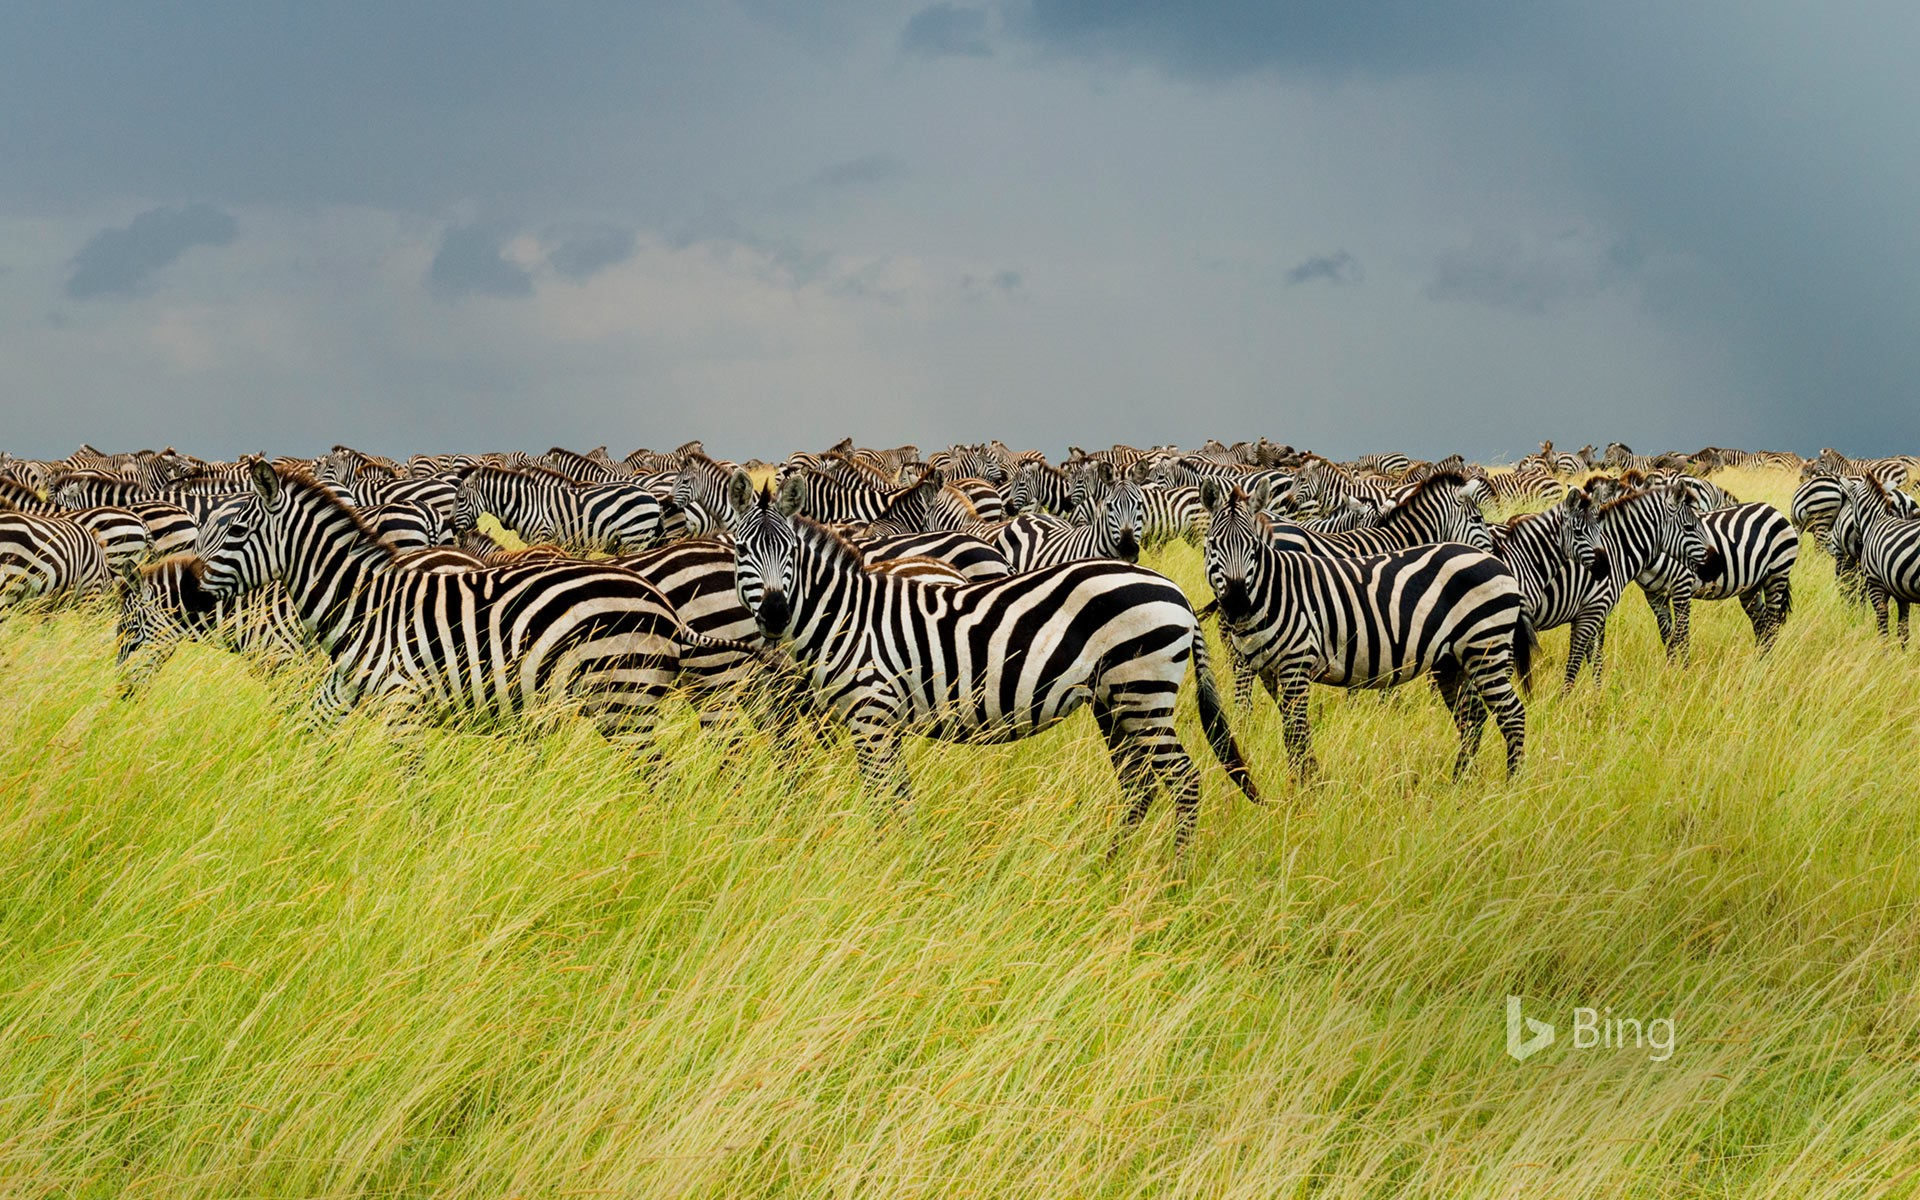 Zebras in Serengeti National Park, Tanzania (© pchoui/Getty Images)